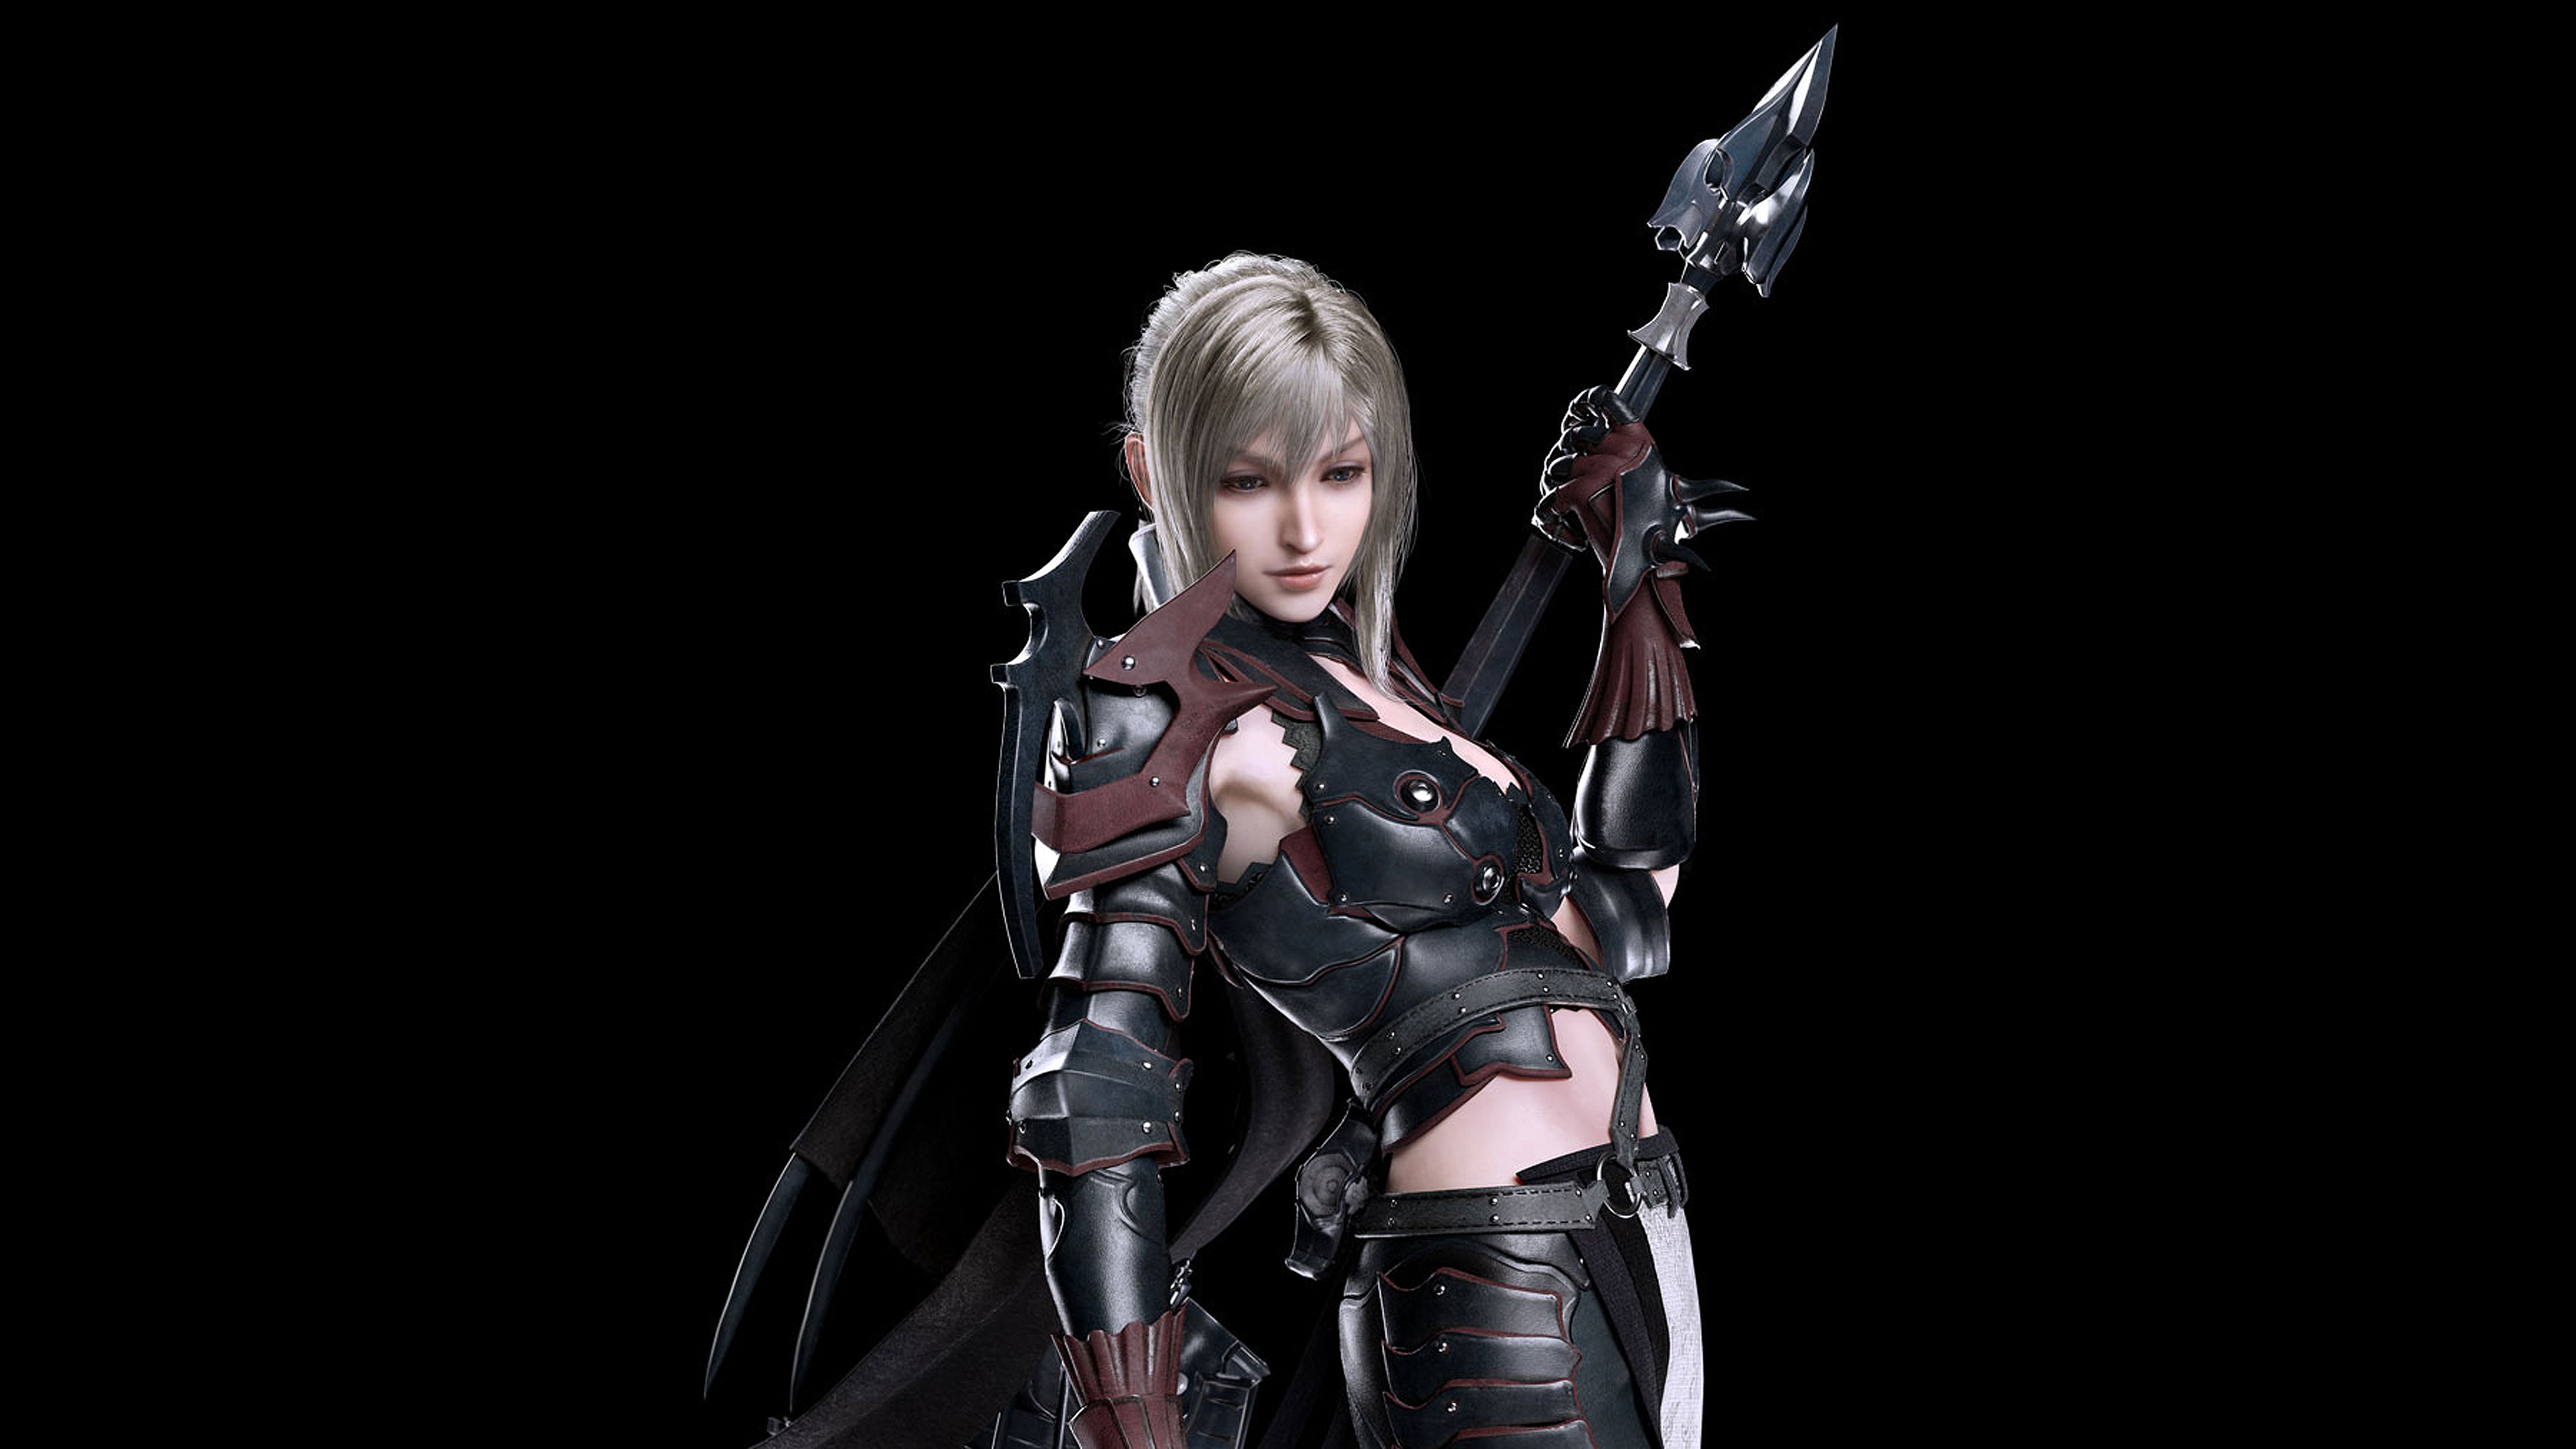 Final Fantasy Xv 4k Ultra Hd Wallpaper: Aranea Highwind Final Fantasy Xv, HD Games, 4k Wallpapers